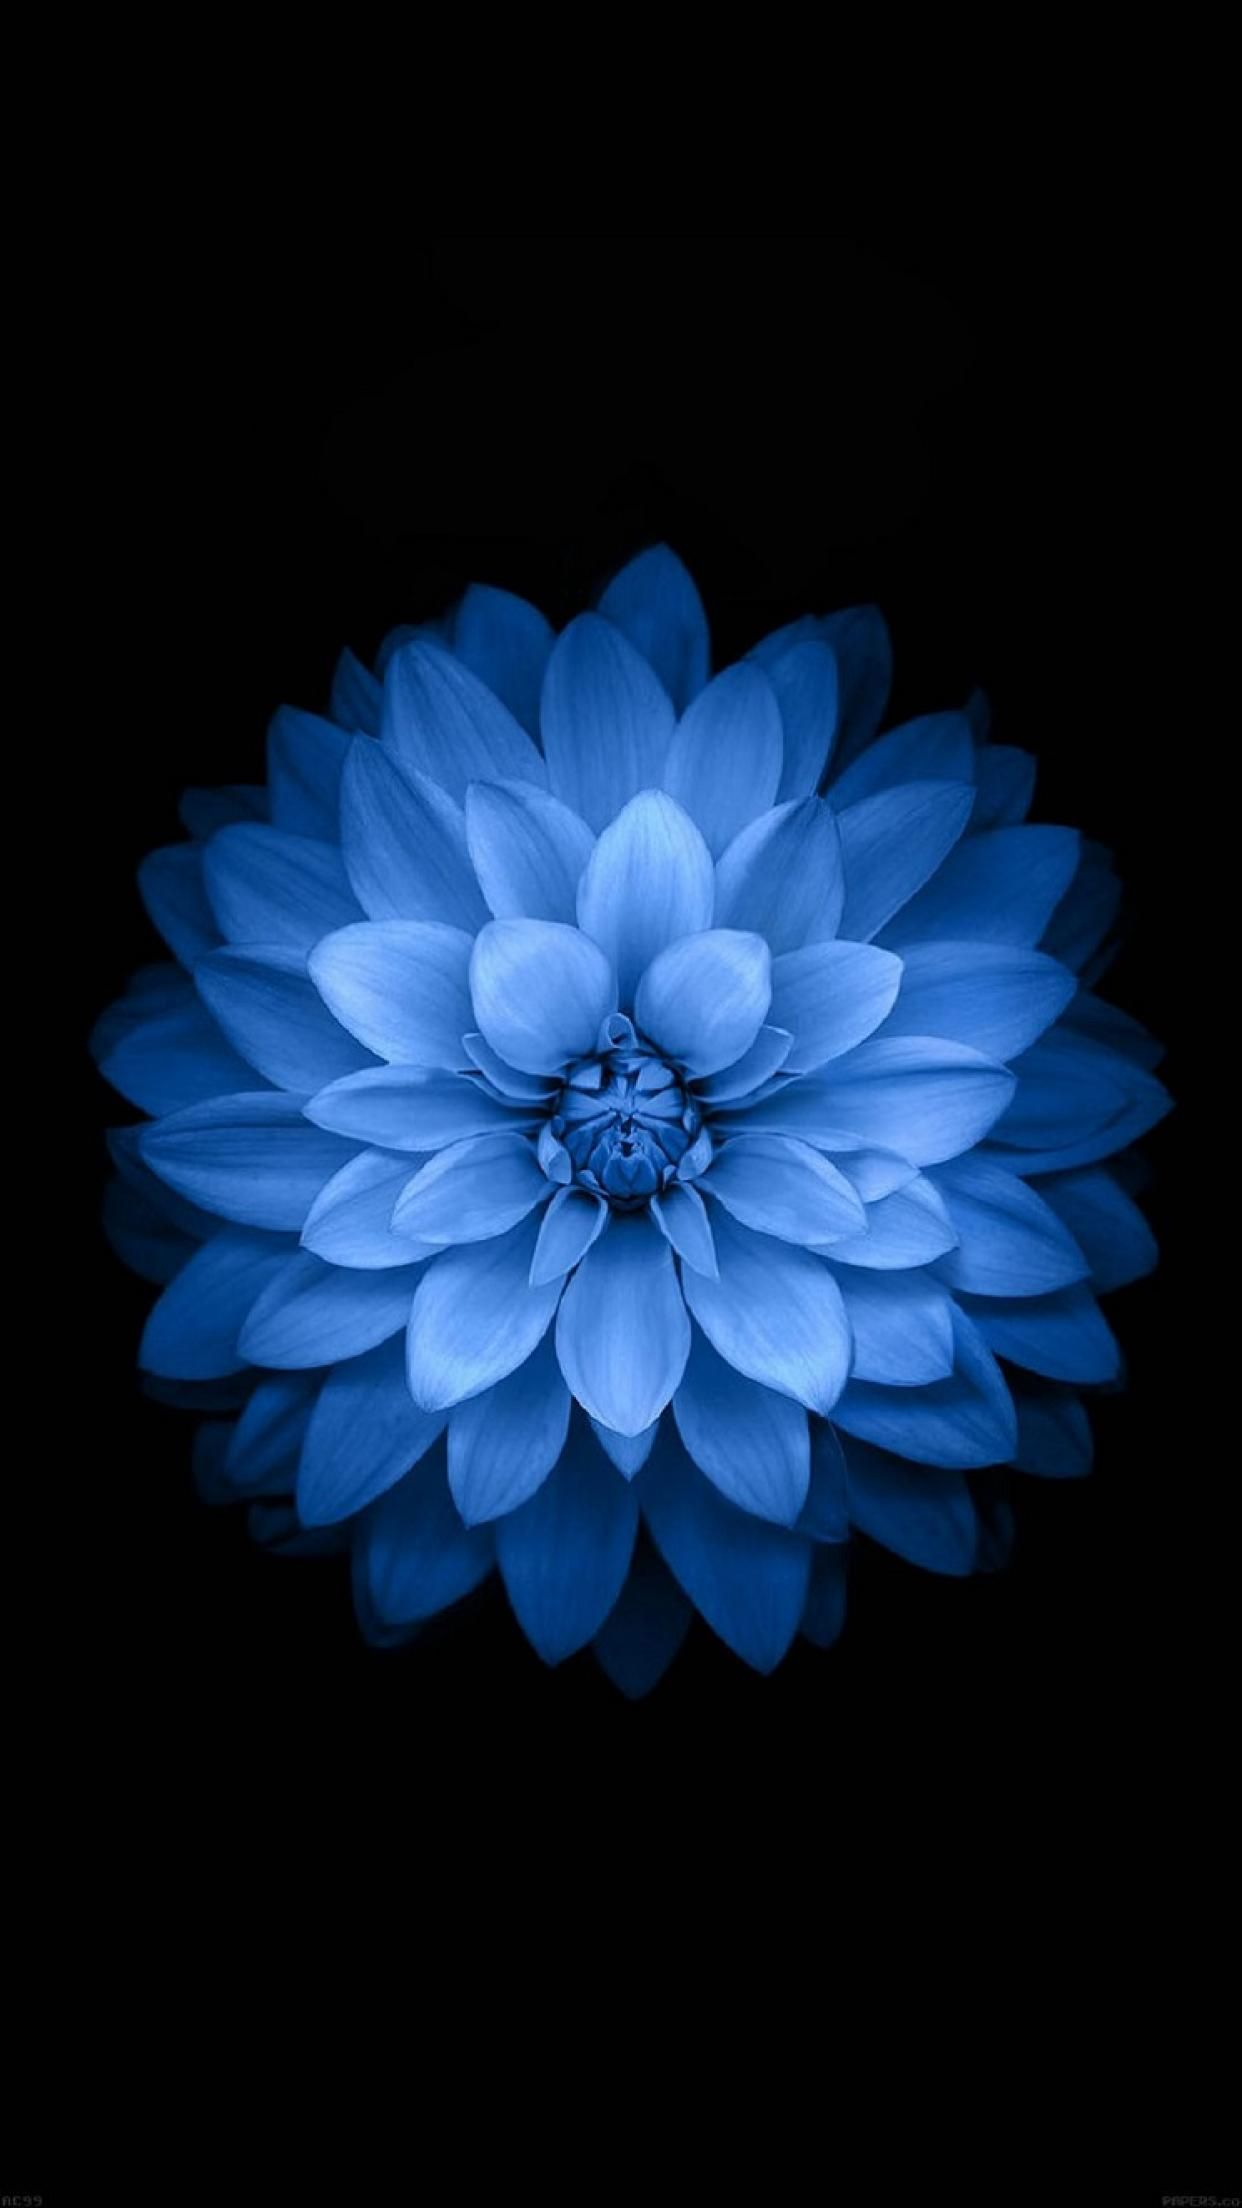 Iphone6 Stock Blue Flower Wallpaper Flower Iphone Wallpaper